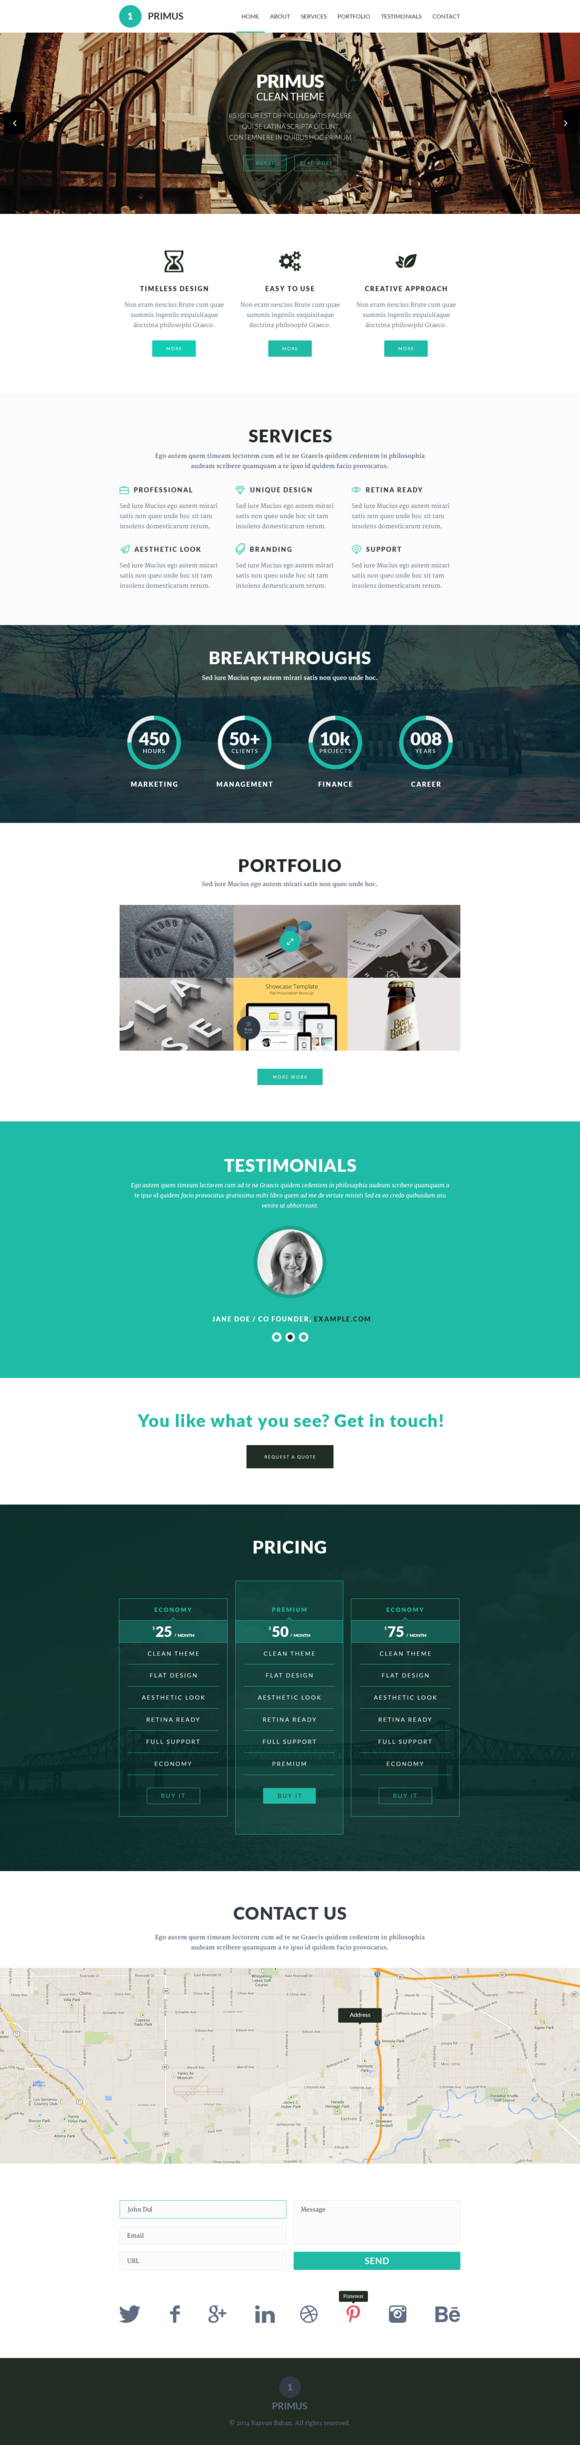 Primus One Page Parallax Template